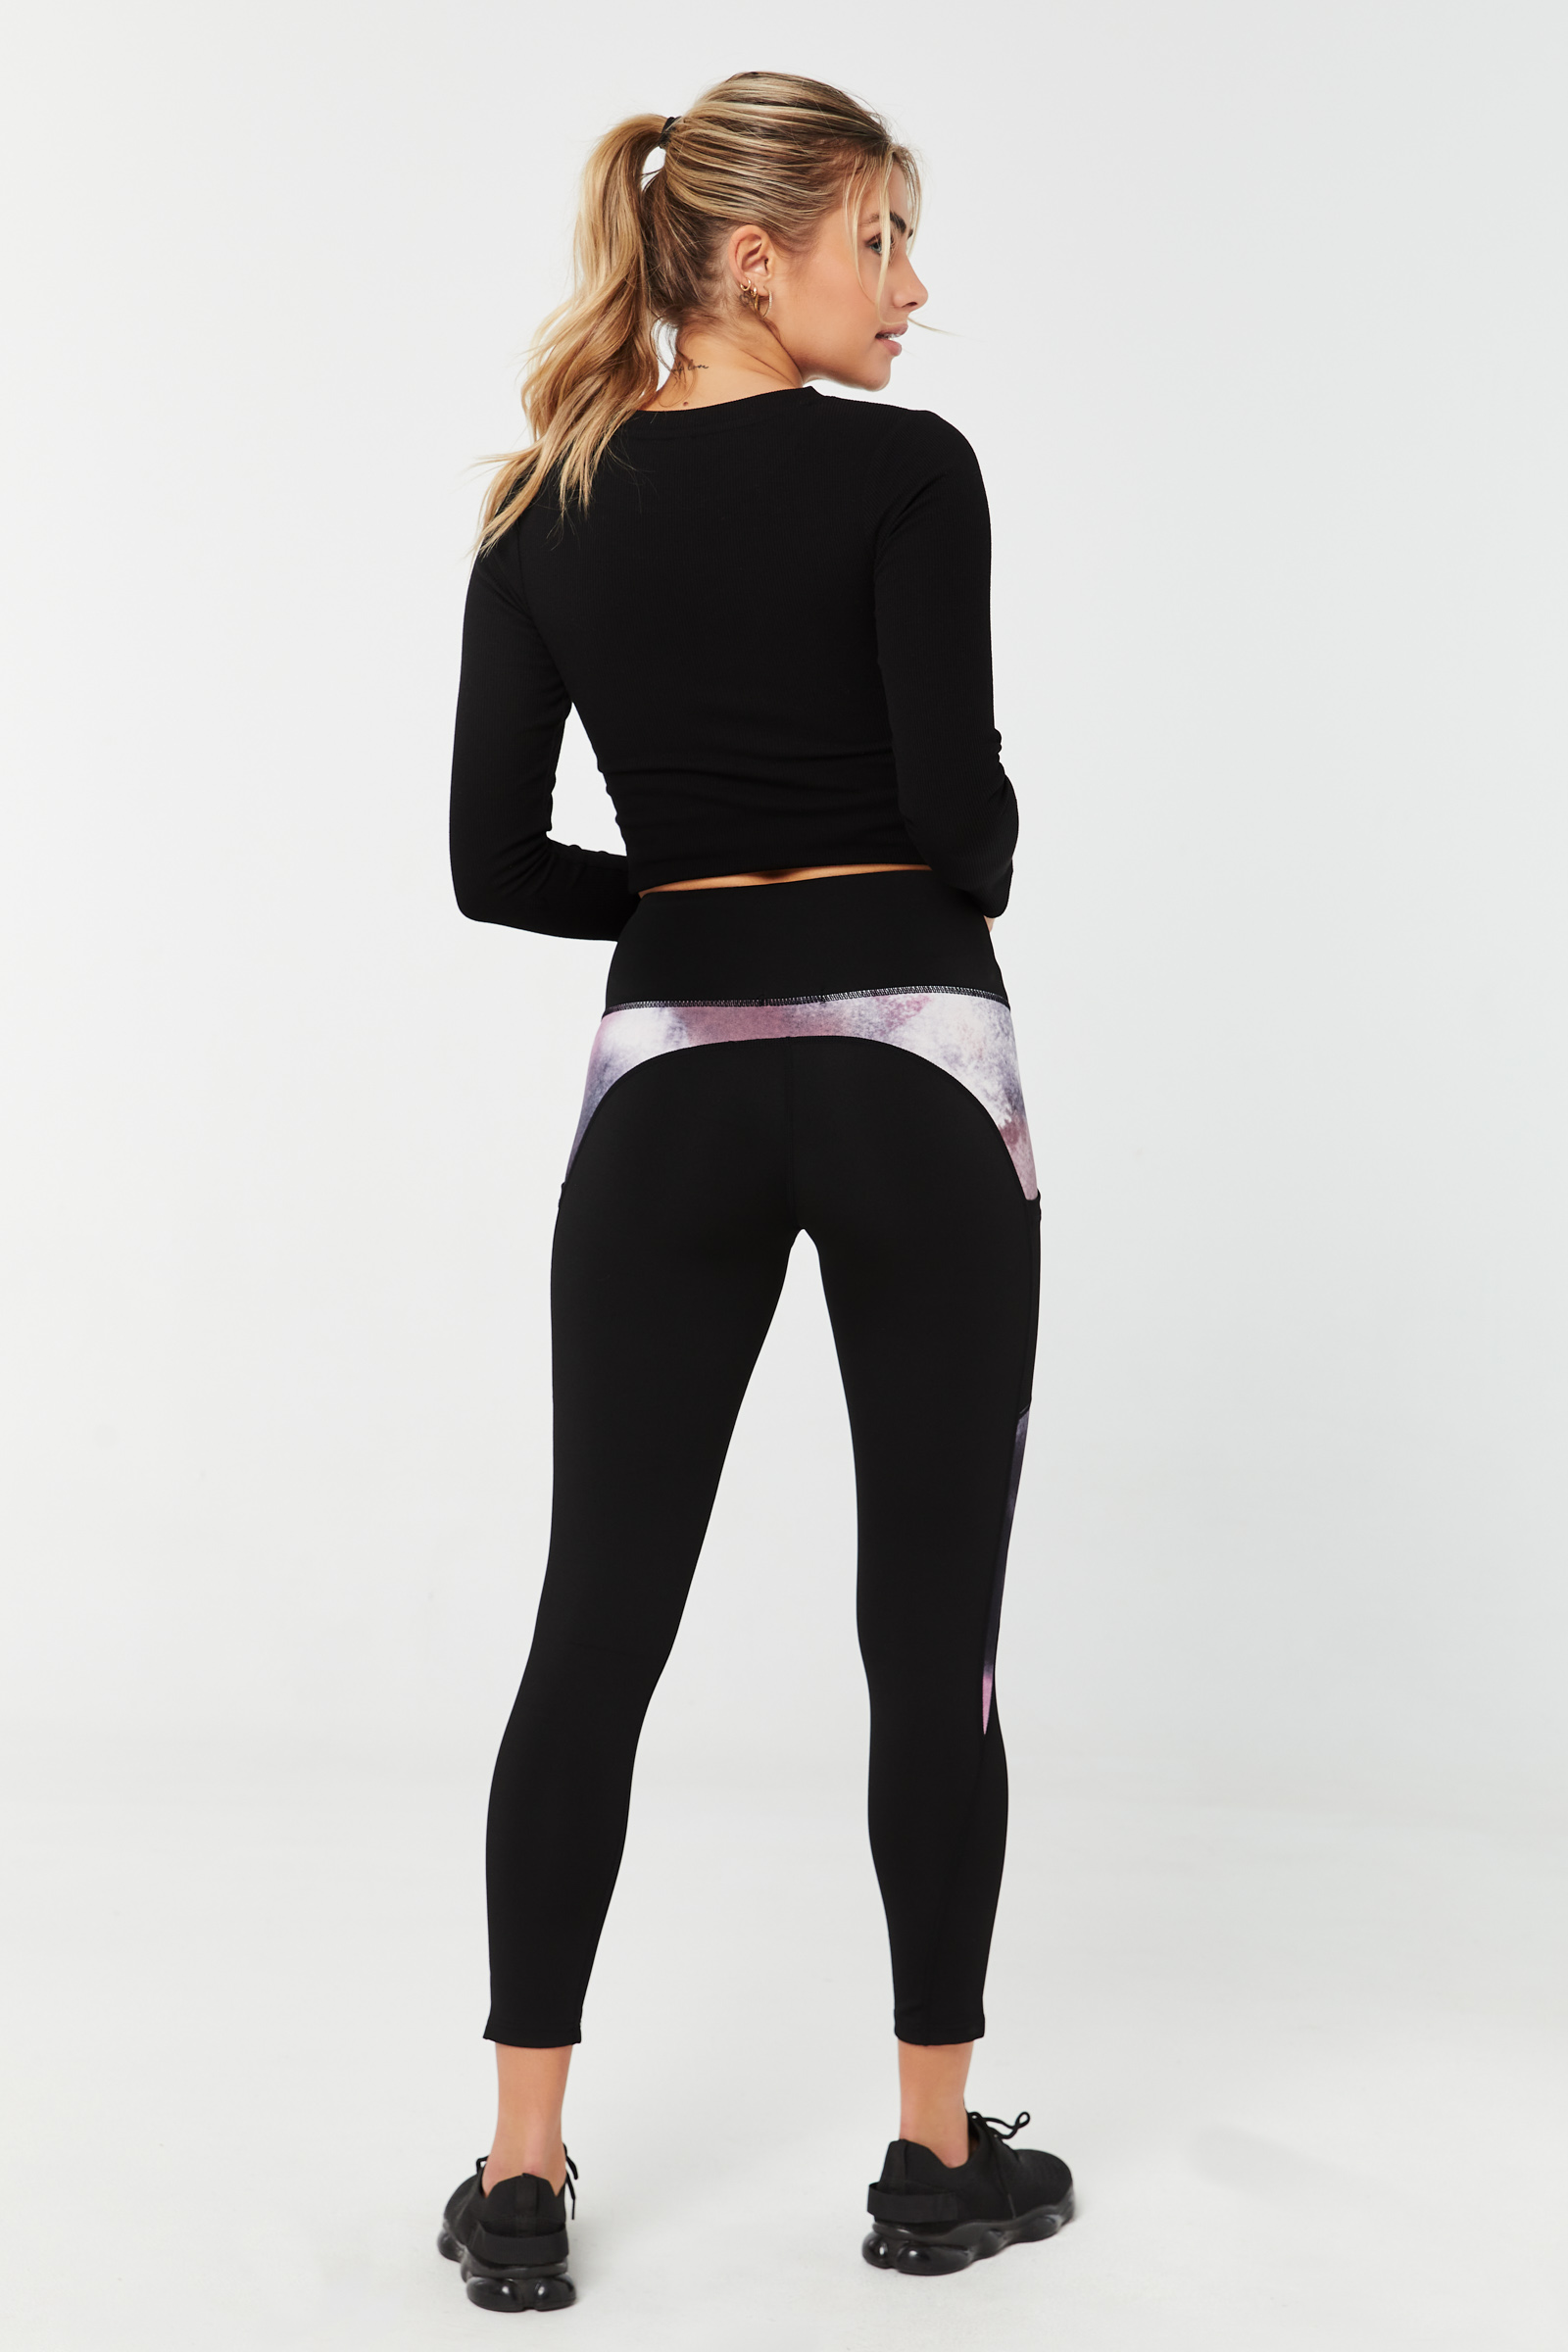 Performance Leggings with Tie-Dye Inserts